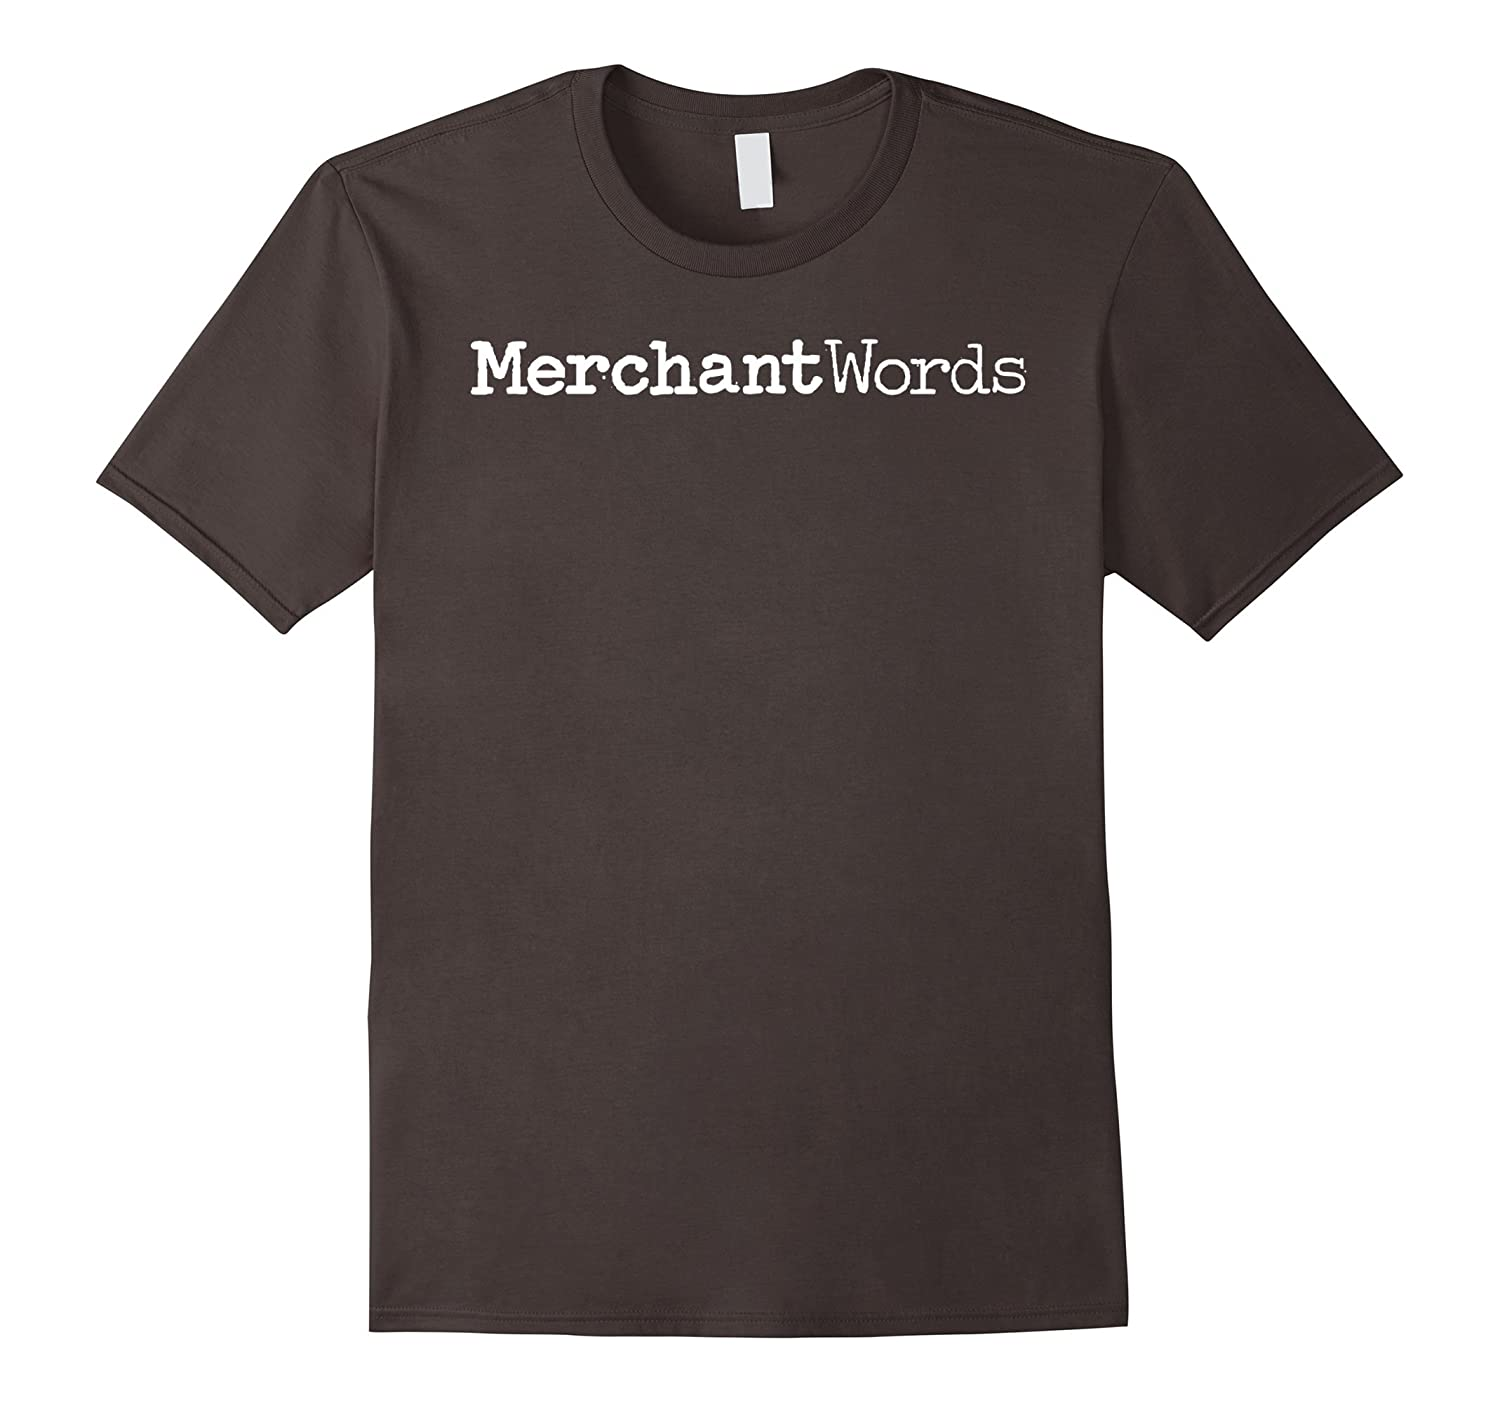 merchantwords free